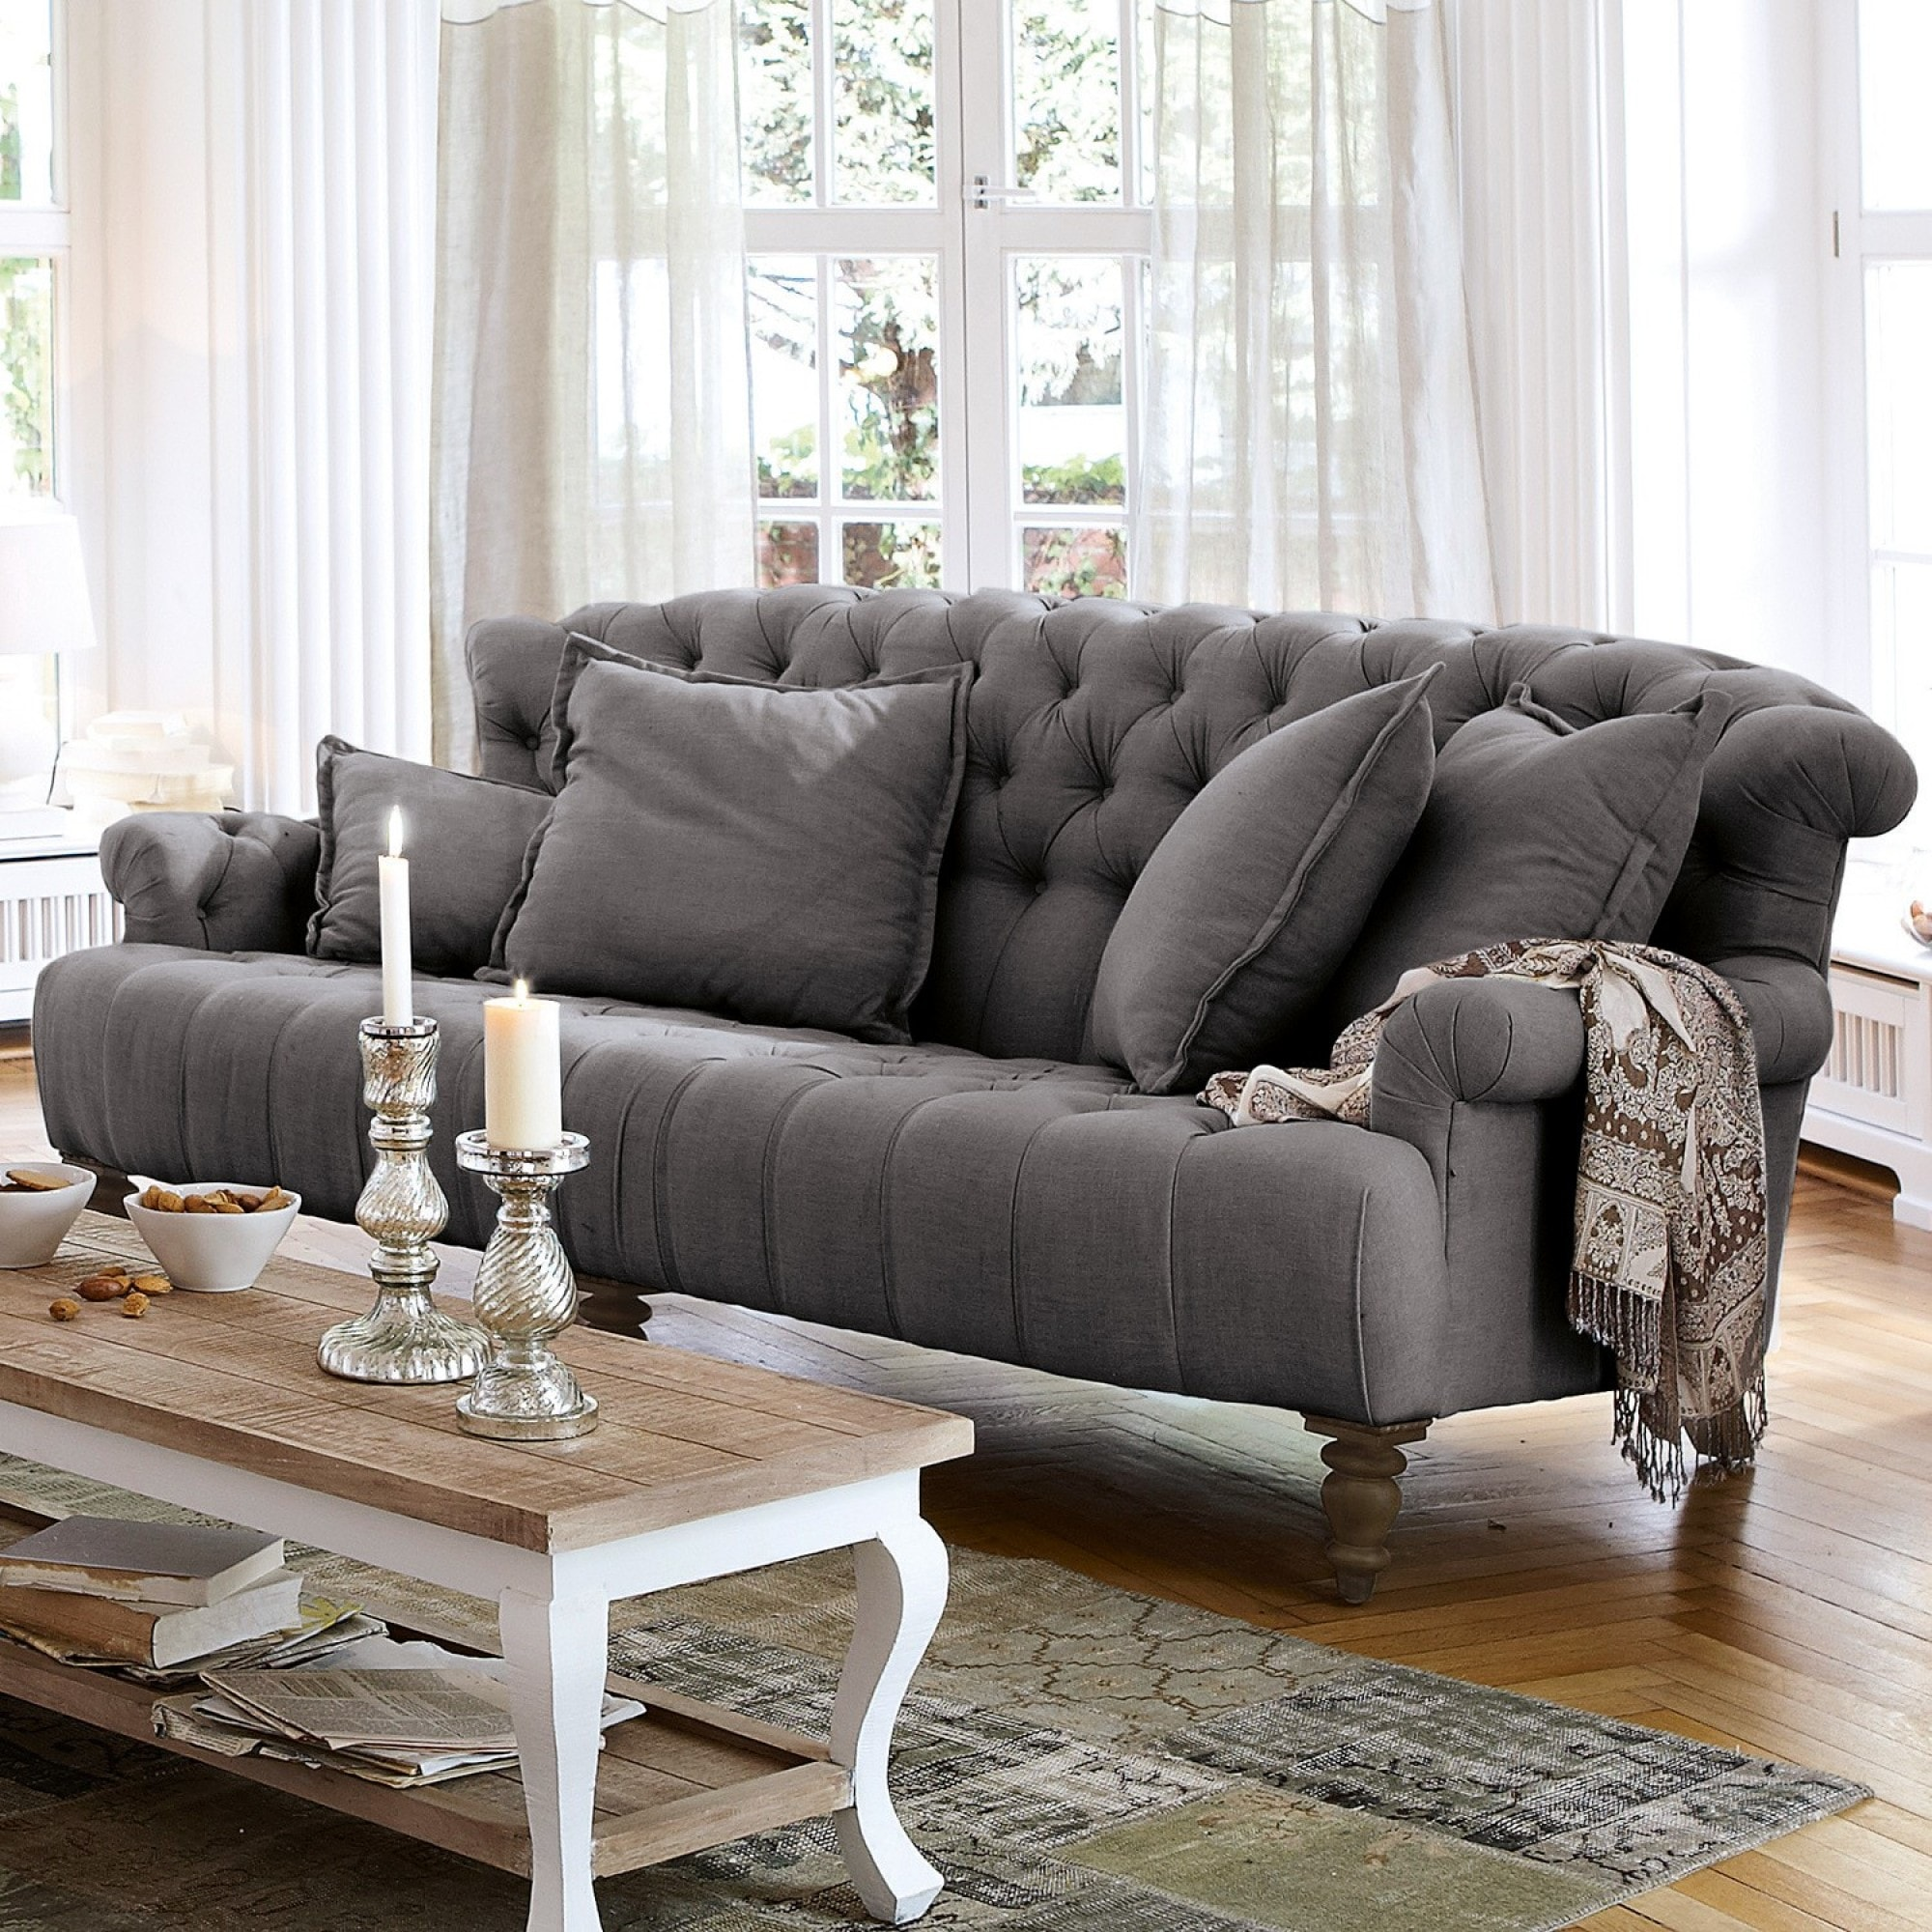 Sofa springfield village anthrazit loberon for Sofa landhausstil